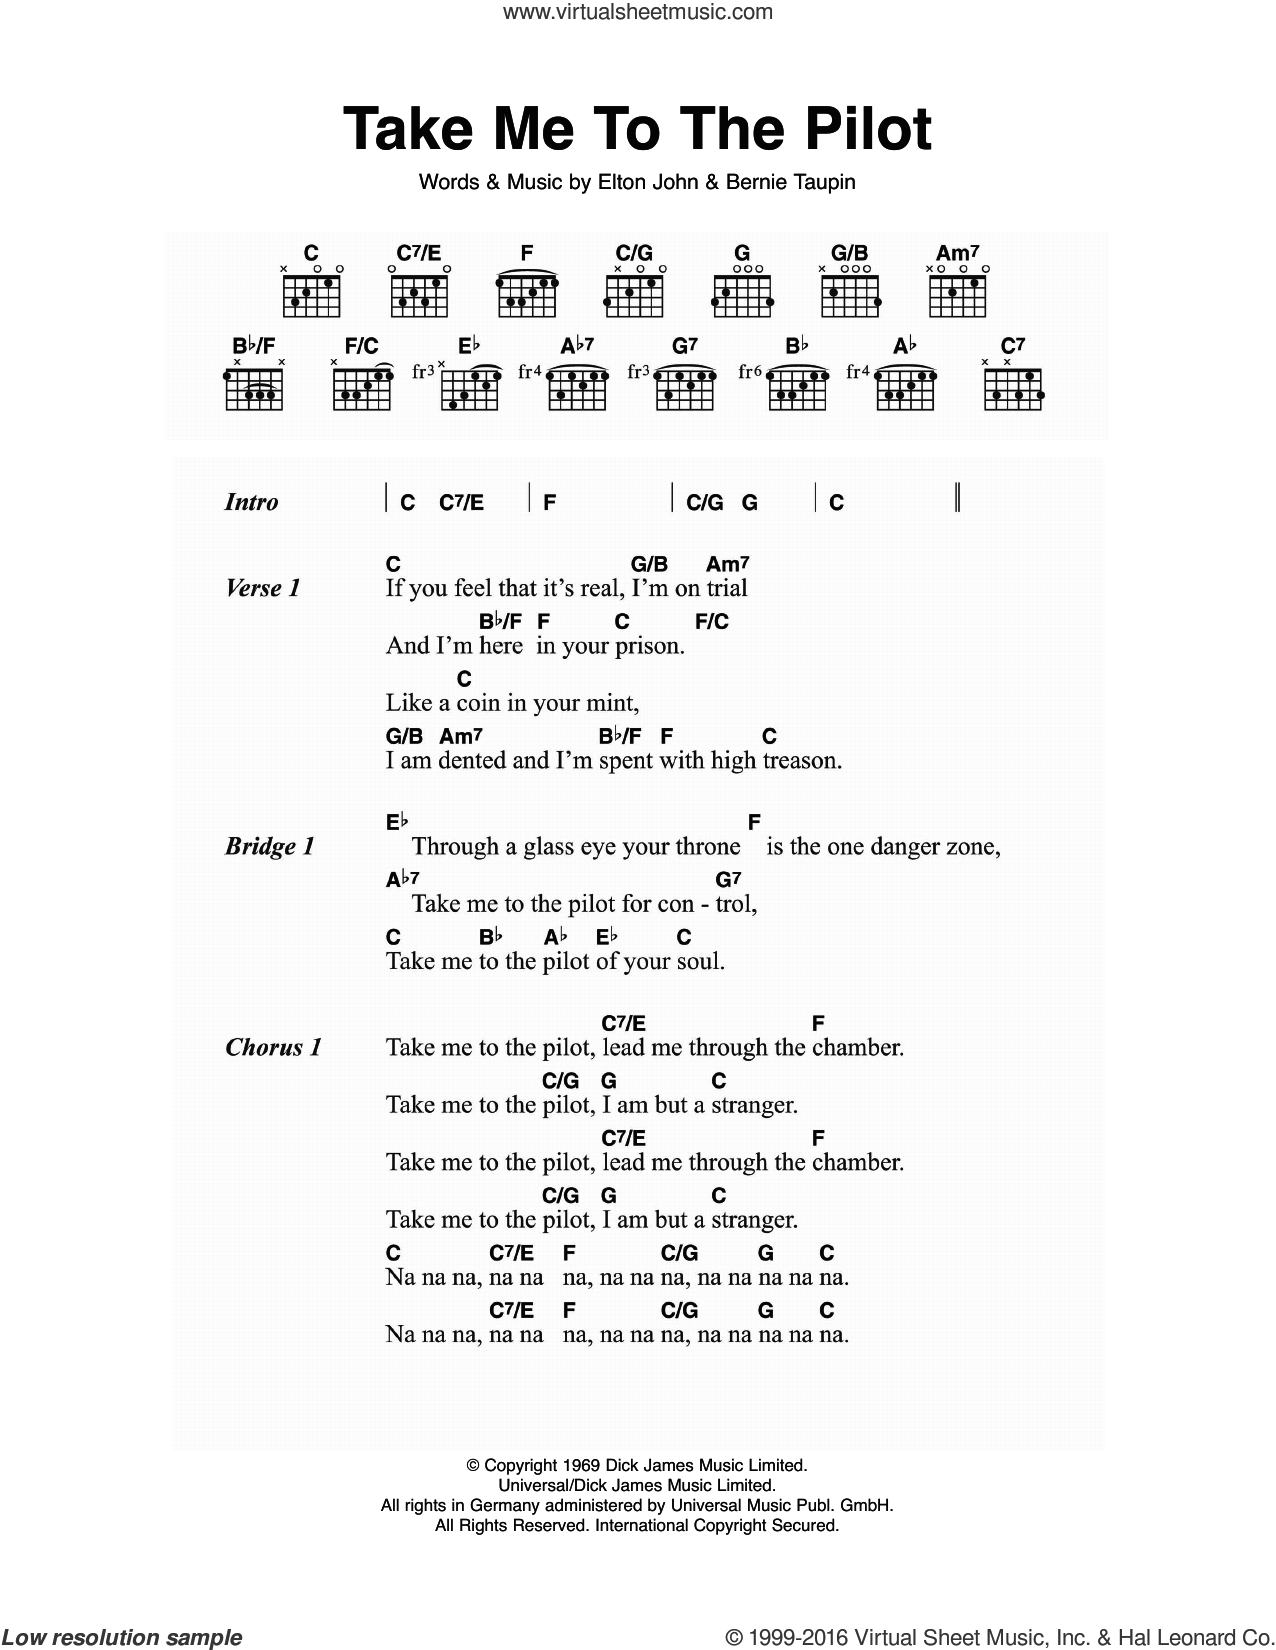 Take Me To The Pilot sheet music for guitar (chords) by Elton John and Bernie Taupin, intermediate skill level